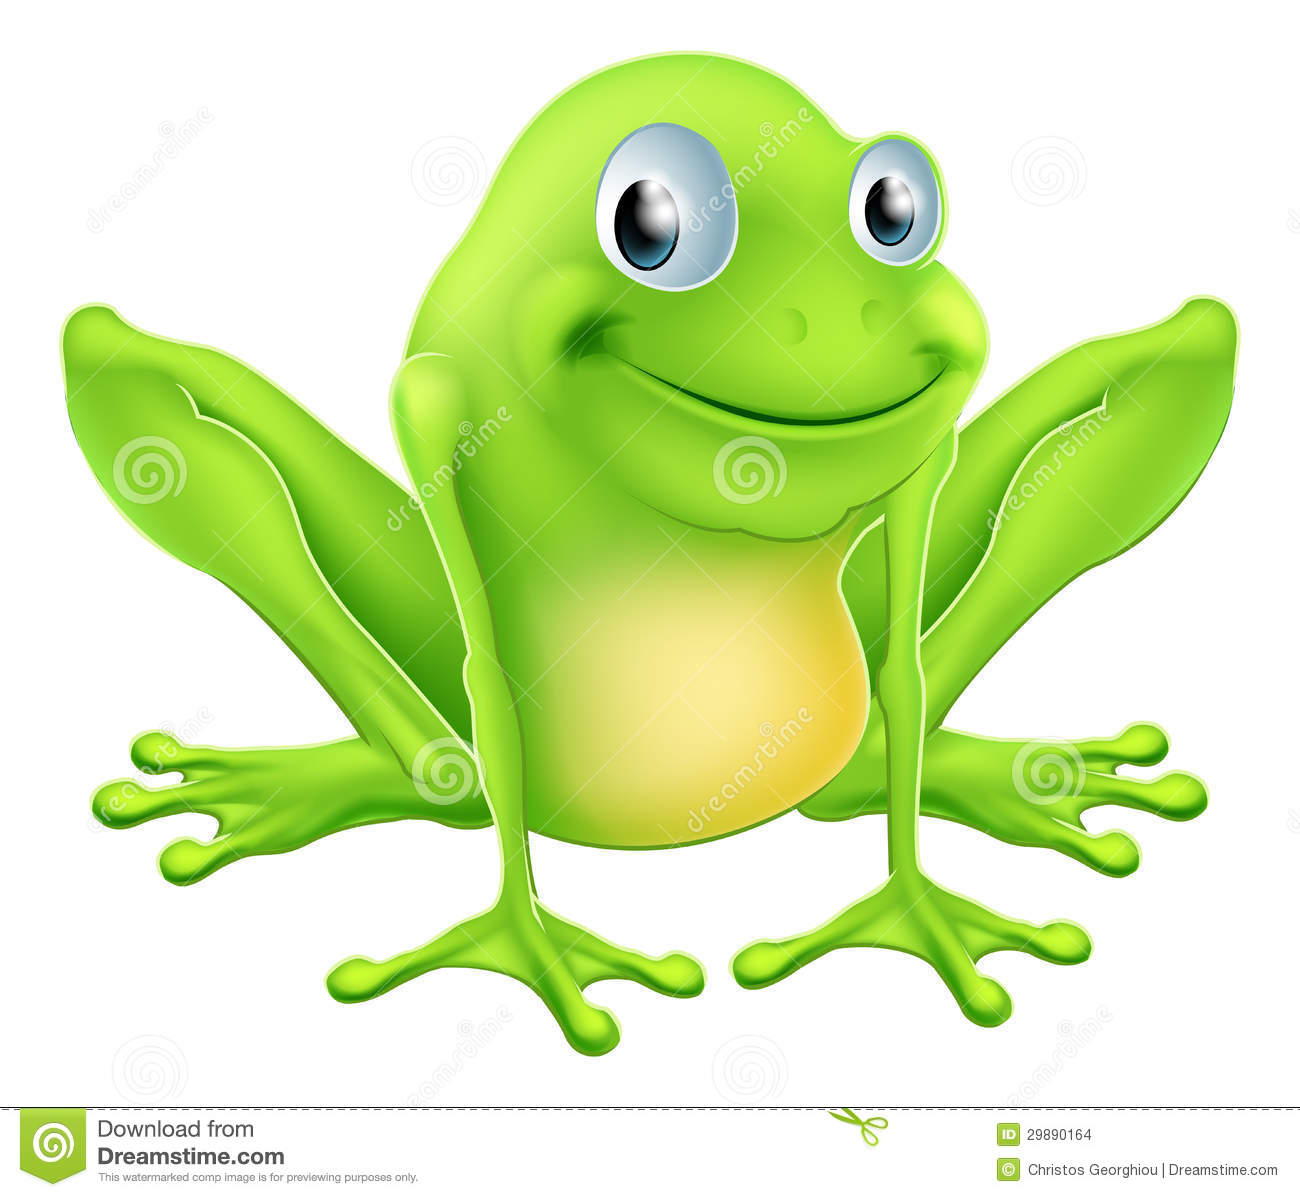 An illustration of a cartoon frog character sitting and smiling. Superhero Flying Vector